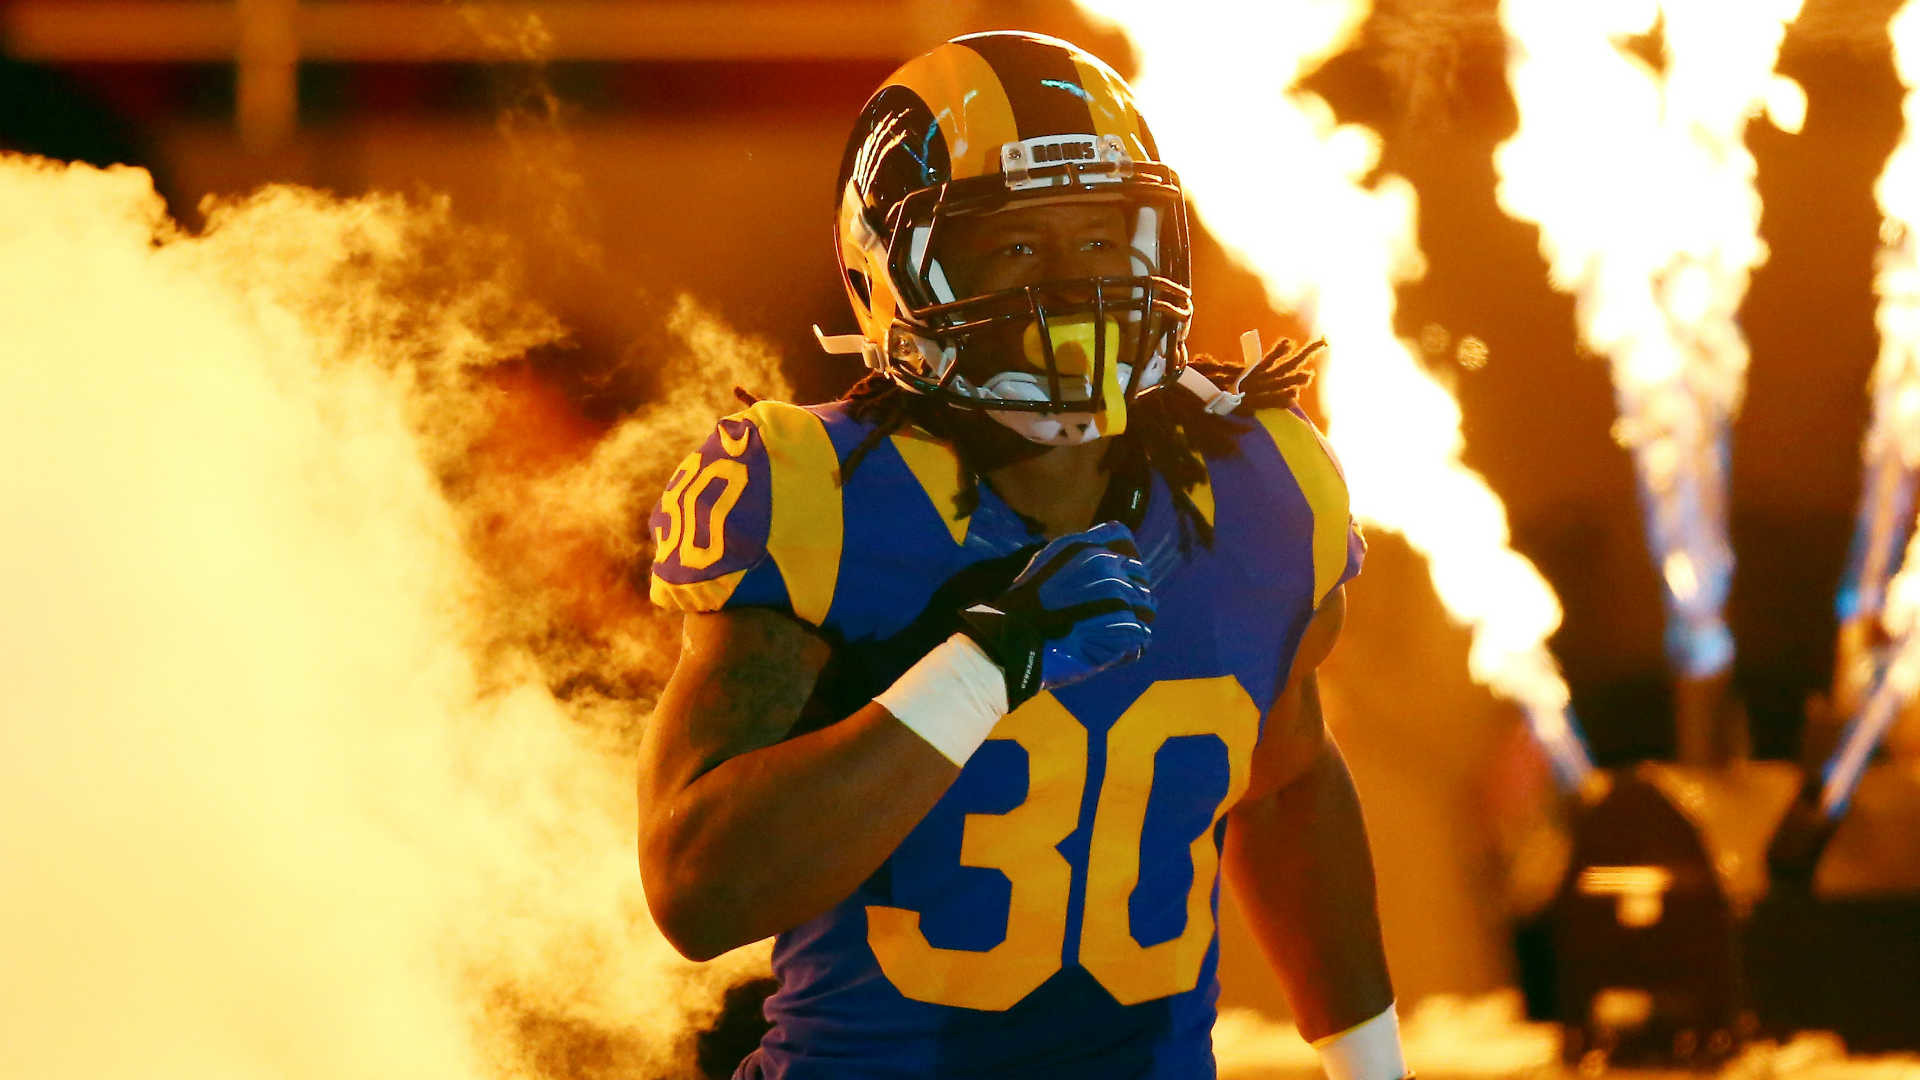 1920x1080 NFL rookie rankings: Todd Gurley dethrones Amari Cooper as top youngster |  Sporting News